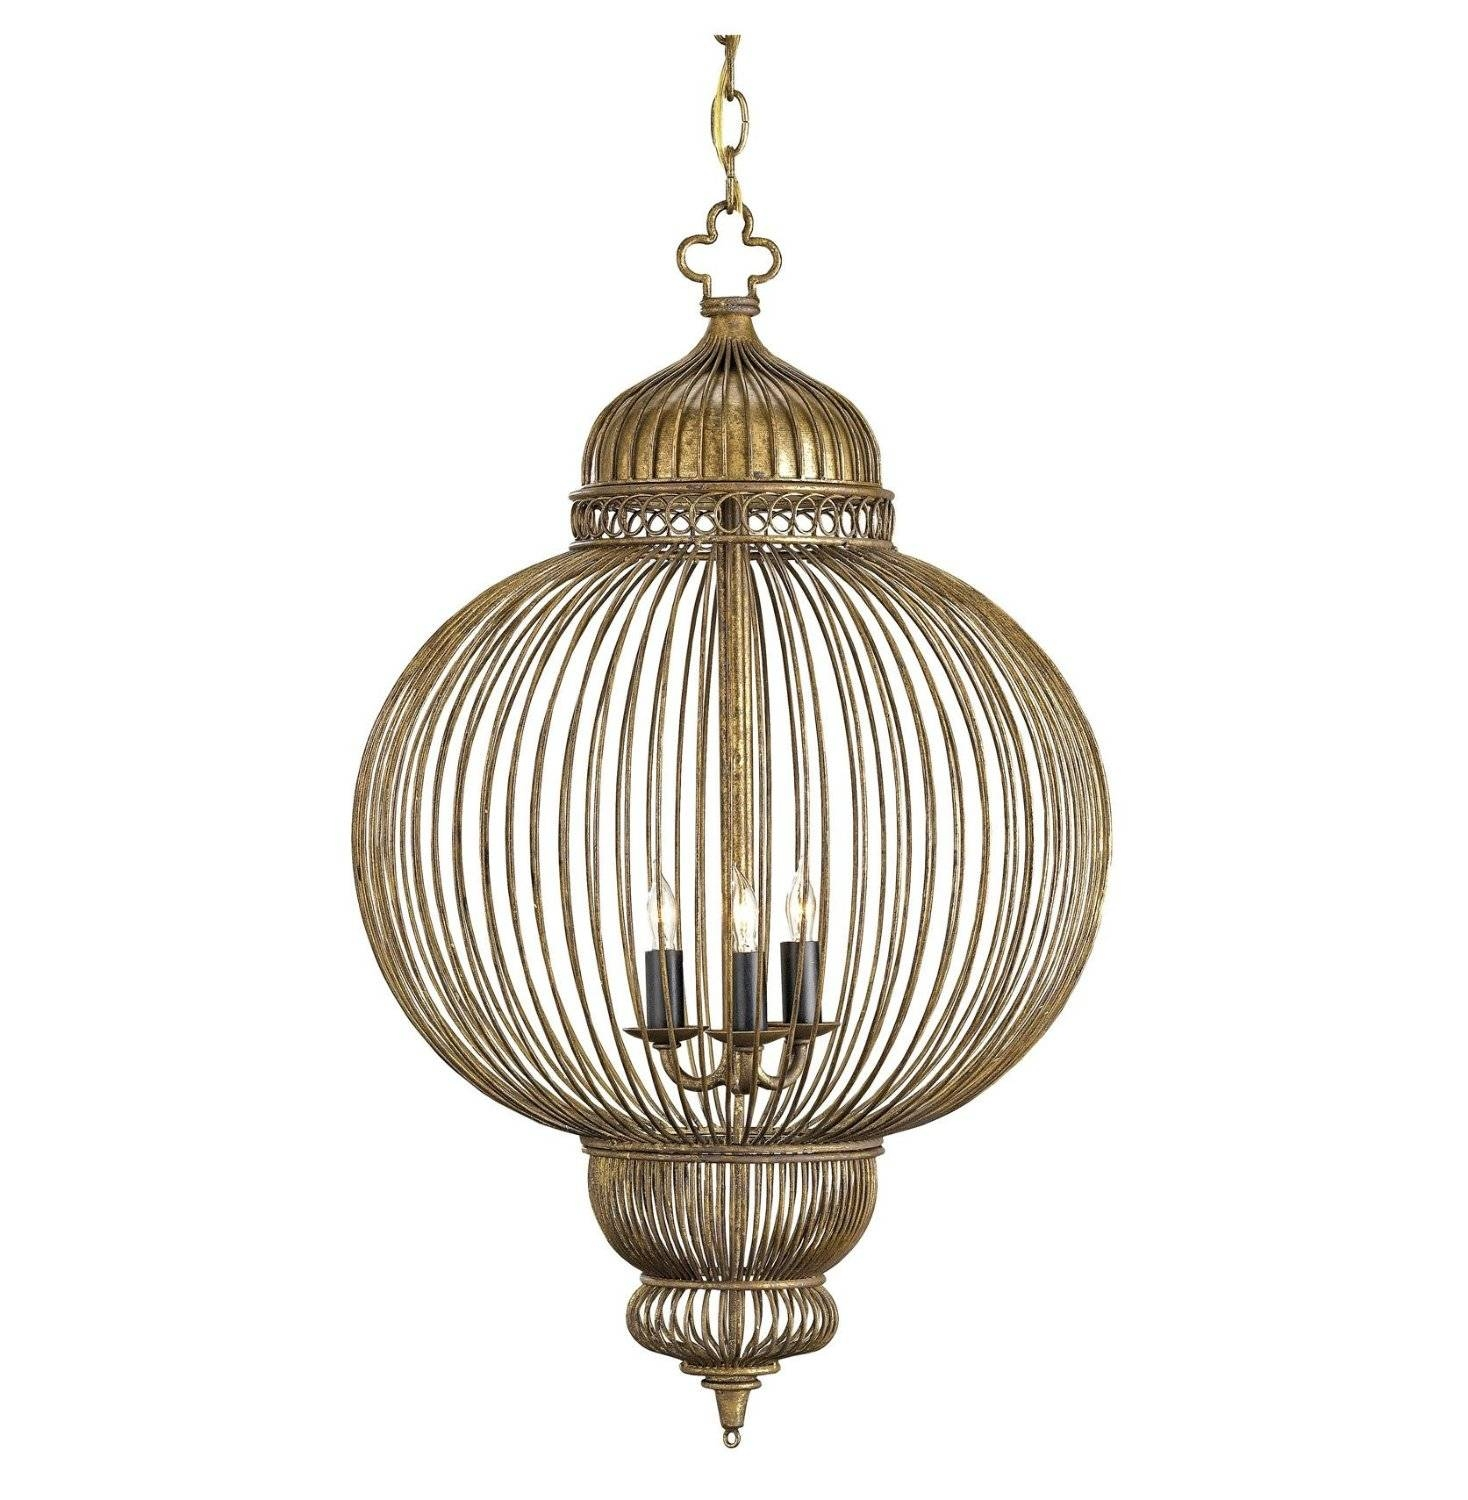 Home Decor. Antique Moroccan Ceiling Lamps Design For Beautiful throughout Moroccan Style Pendant Ceiling Lights (Image 3 of 15)